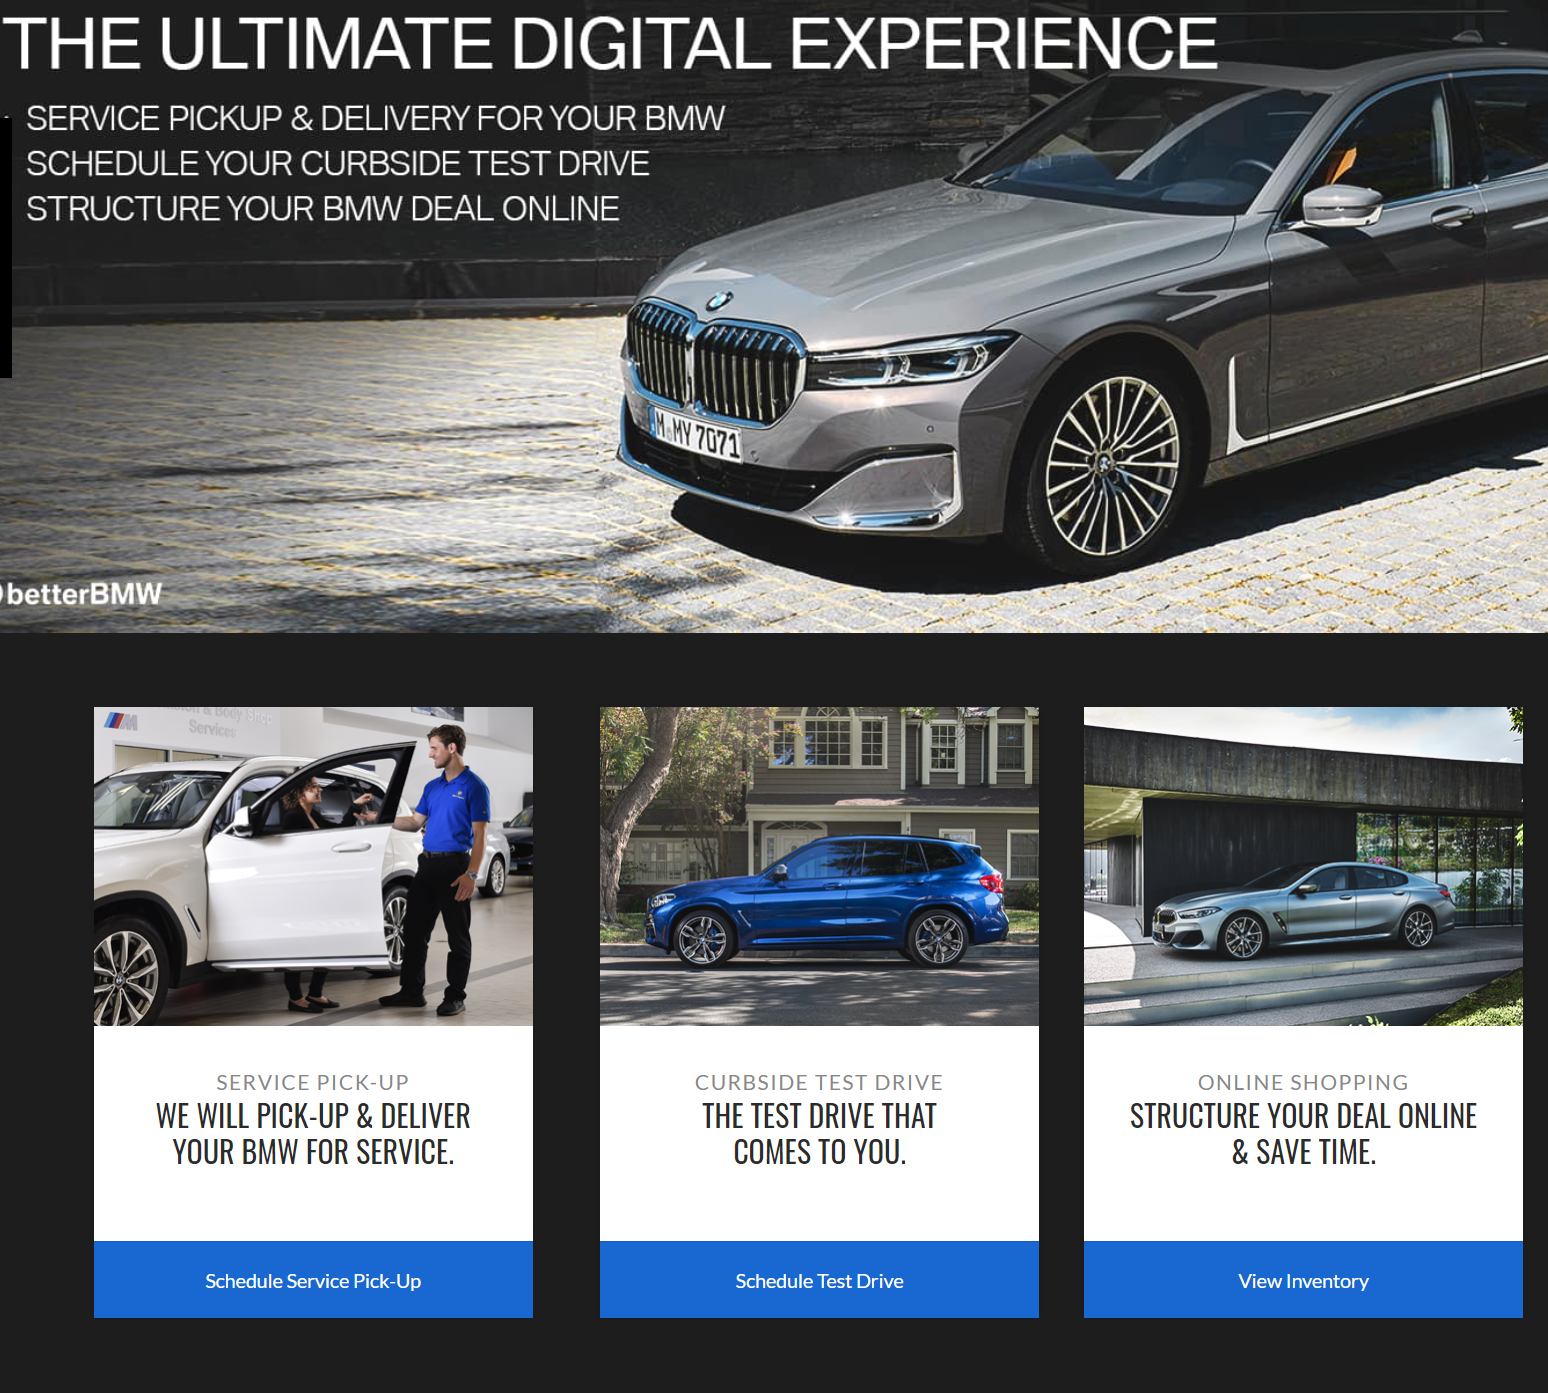 BMW of Bridgeport Digital Experience